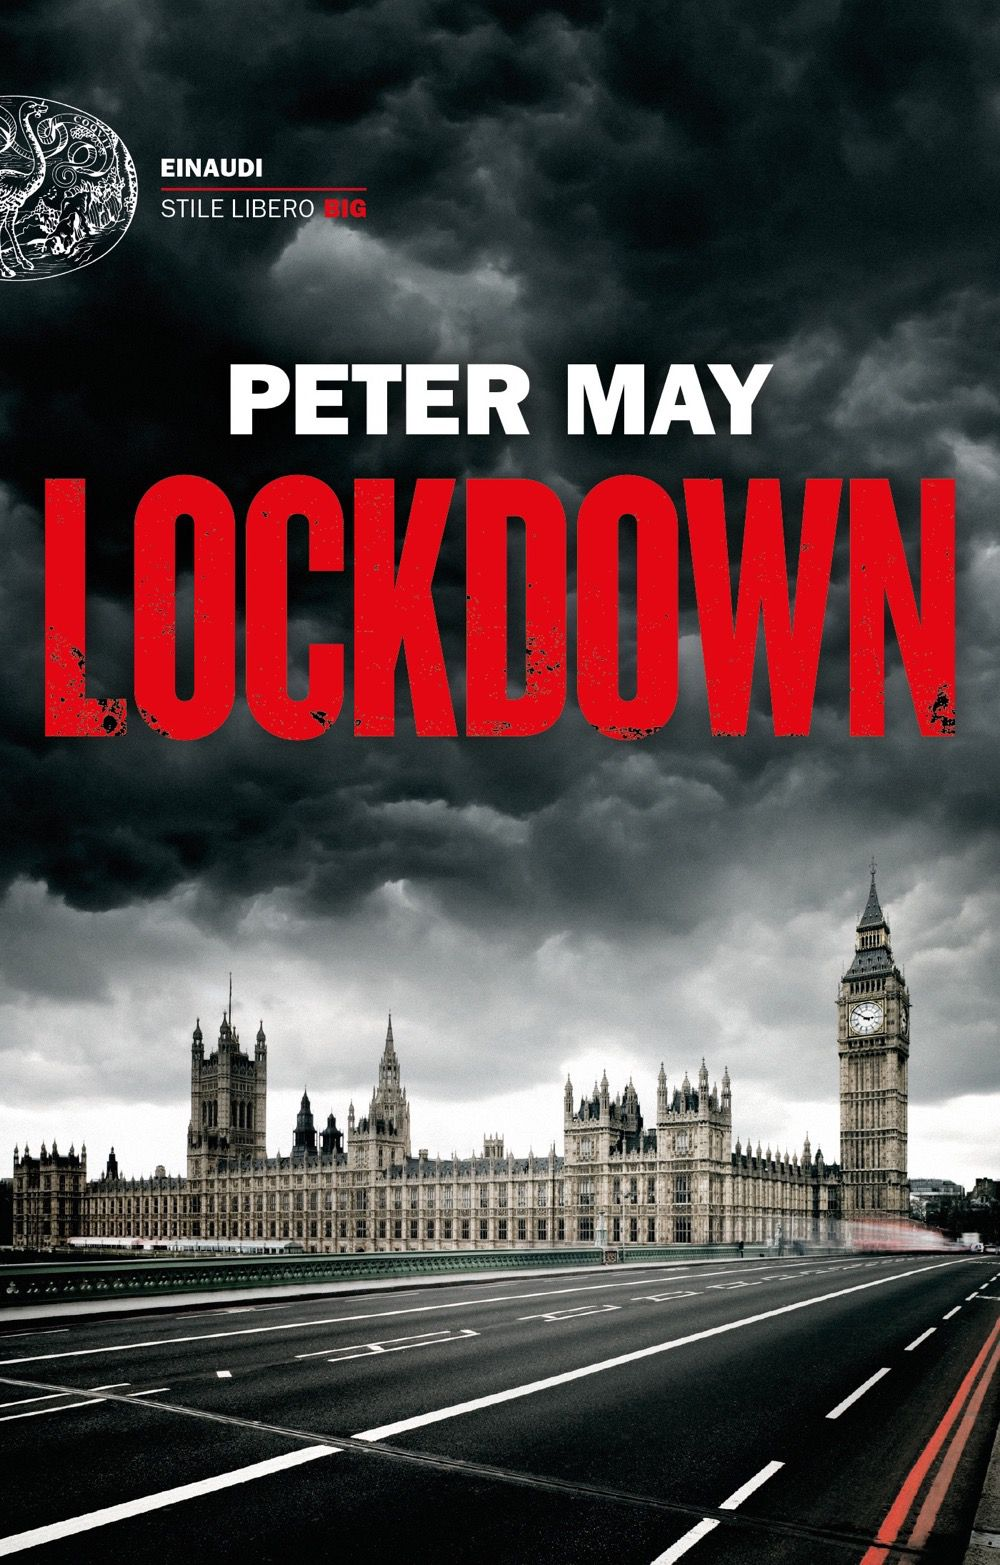 Peter May, Lockdown, Einaudi (Stile Libero Big), 2020